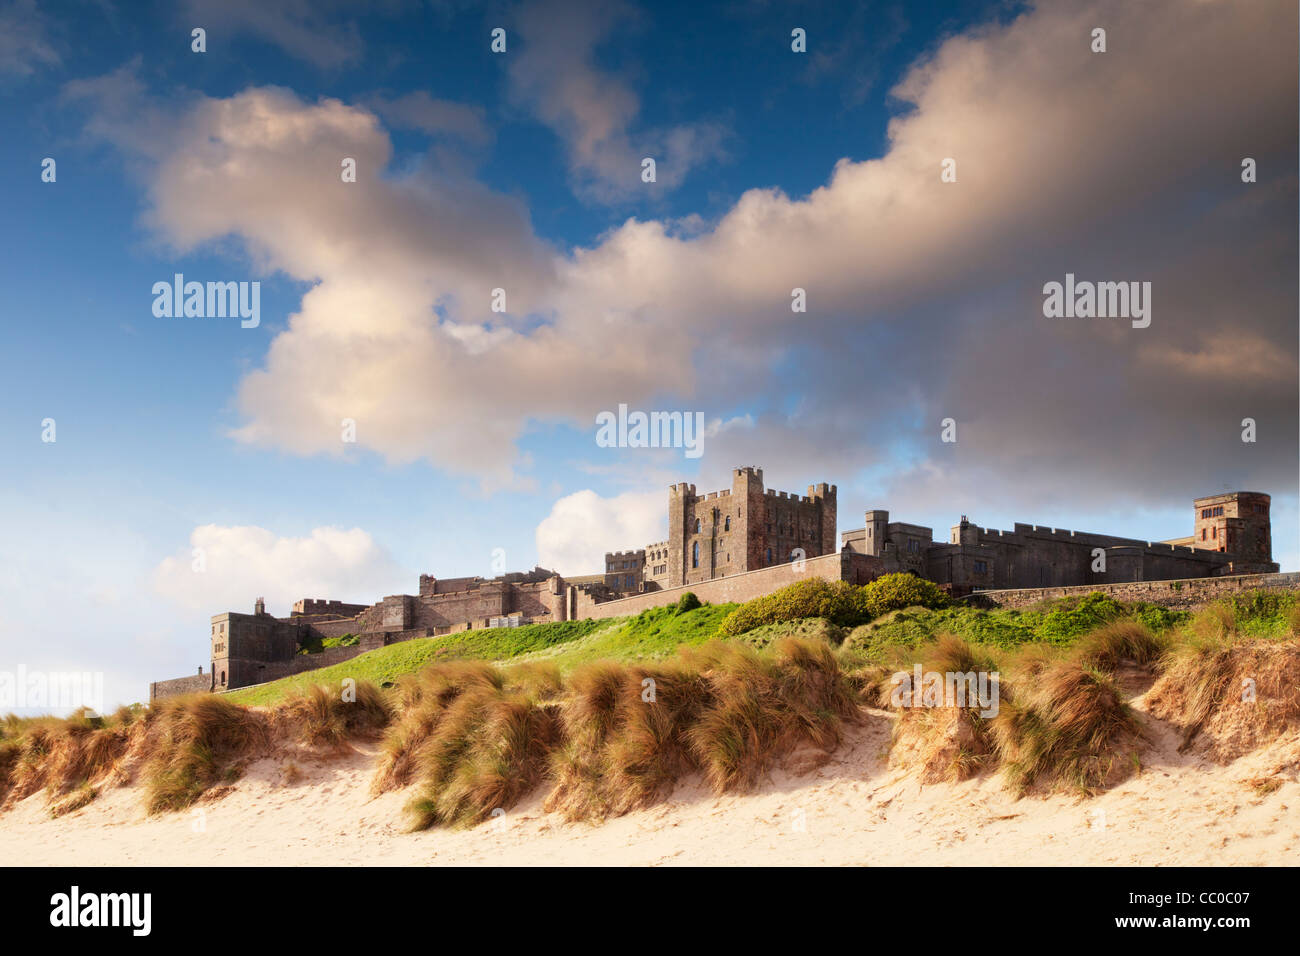 Bamburgh Castle, on the Northumberland coast, England. Stock Photo